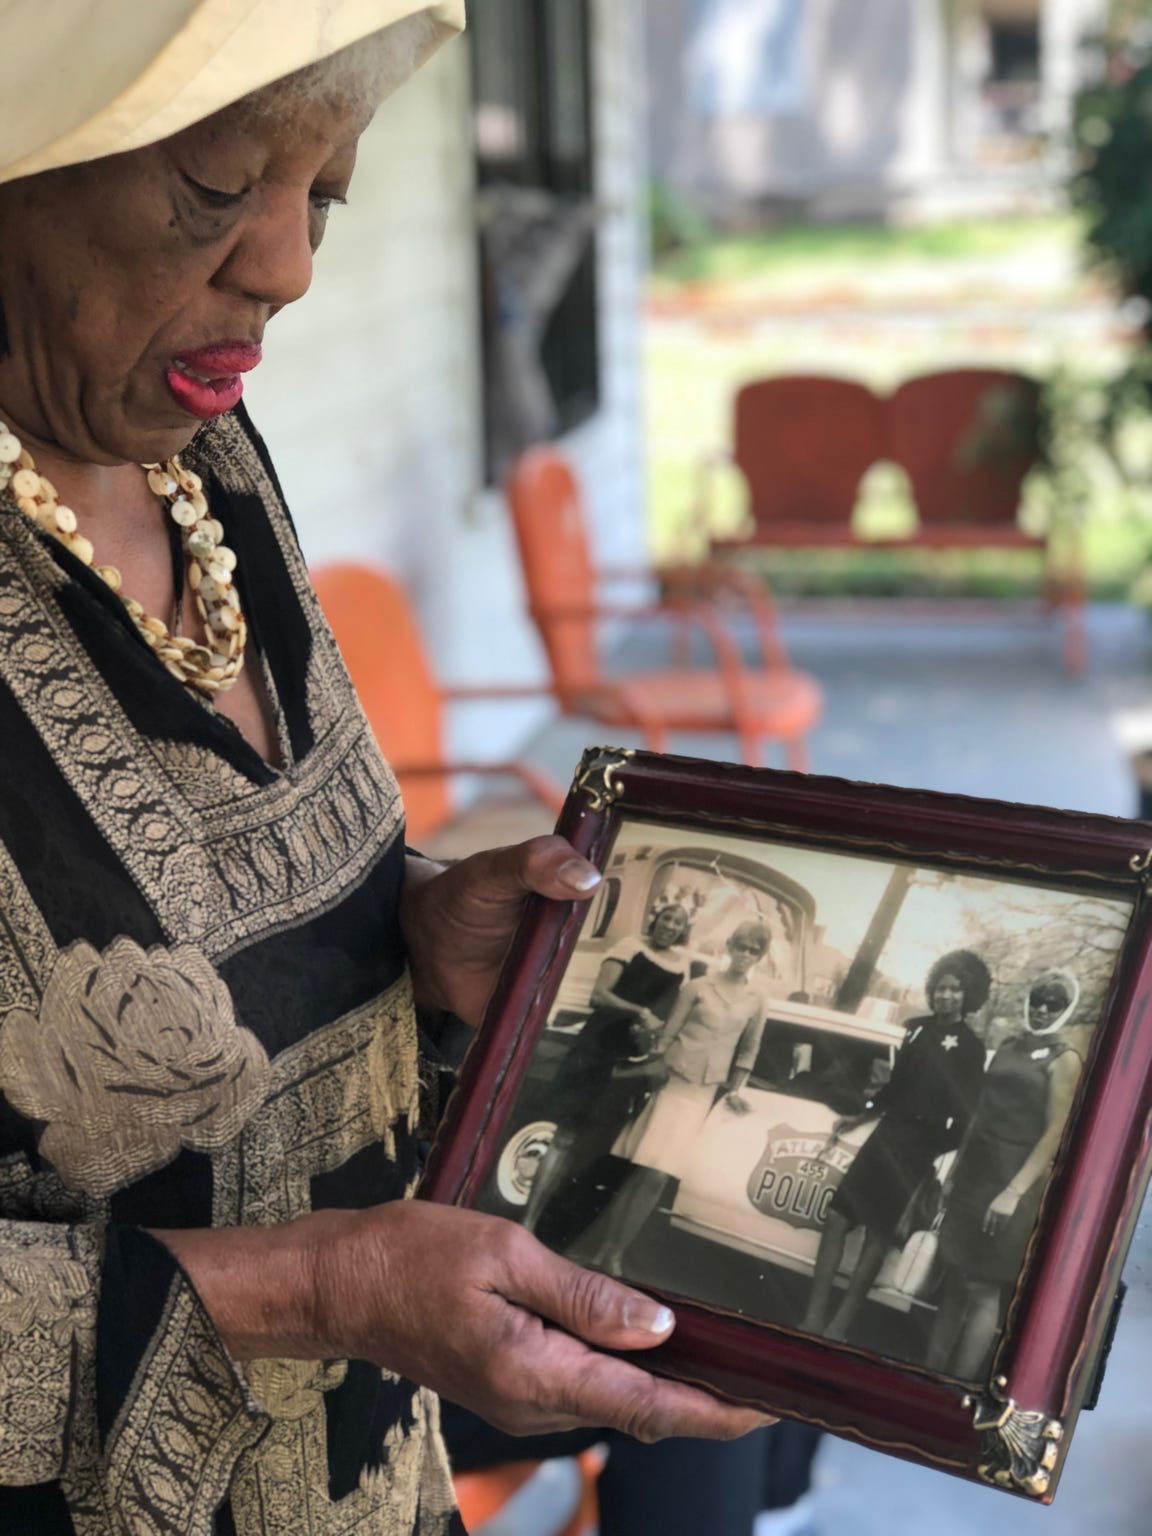 Mary Mitchell, 83, stands on the porch of her home in Orange Mound with a photo taken at Dr. Martin Luther King Jr.'s funeral, which Mitchell attended with friends who posed in front of a police car with civil rights activist Andrew Young inside.